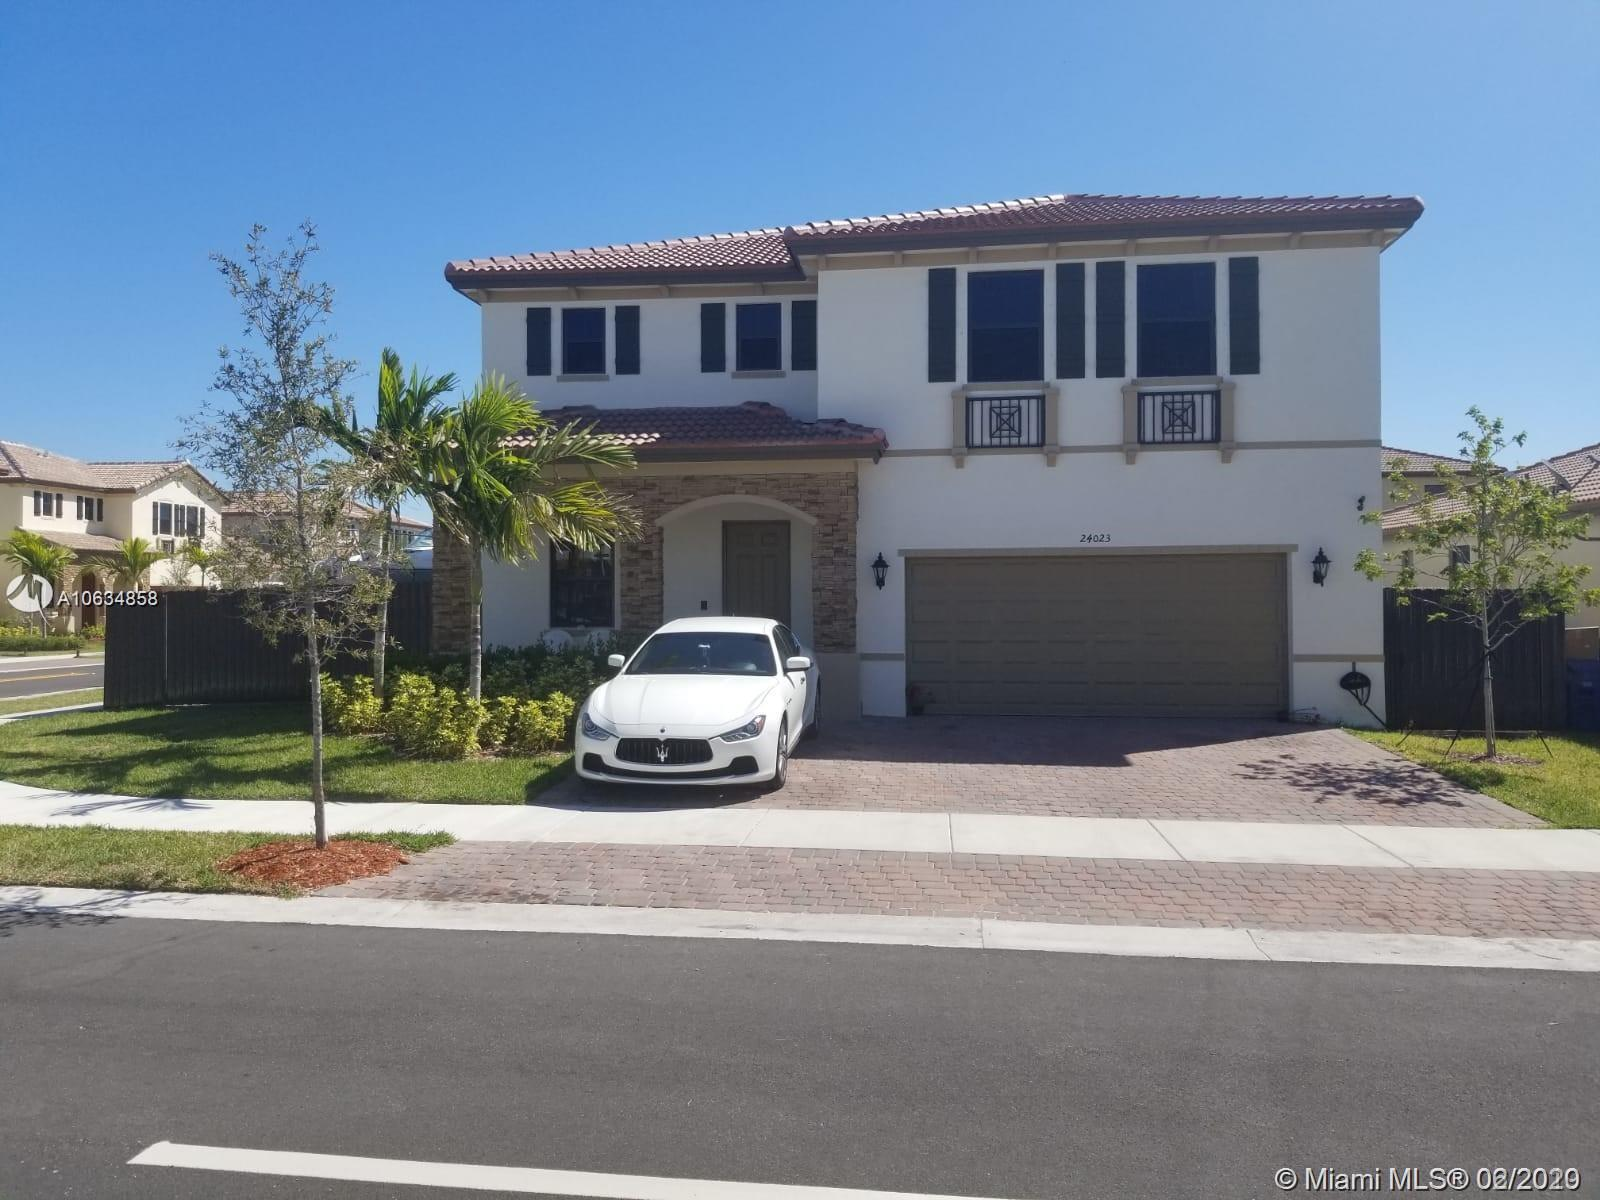 Seller is motivated! Bring your offer. This beautiful two-story home built in 2017 has 4 bedrooms, 2.5 bathrooms, 2 car garage, beautiful pool area with a gazebo in the backyard, and an outdoor kitchen. Has plenty of space for your boat. Only a few blocks away from the turnpike expressway and near major stores like Walmart, Publix, Southland Mall. Don't miss this opportunity! :)